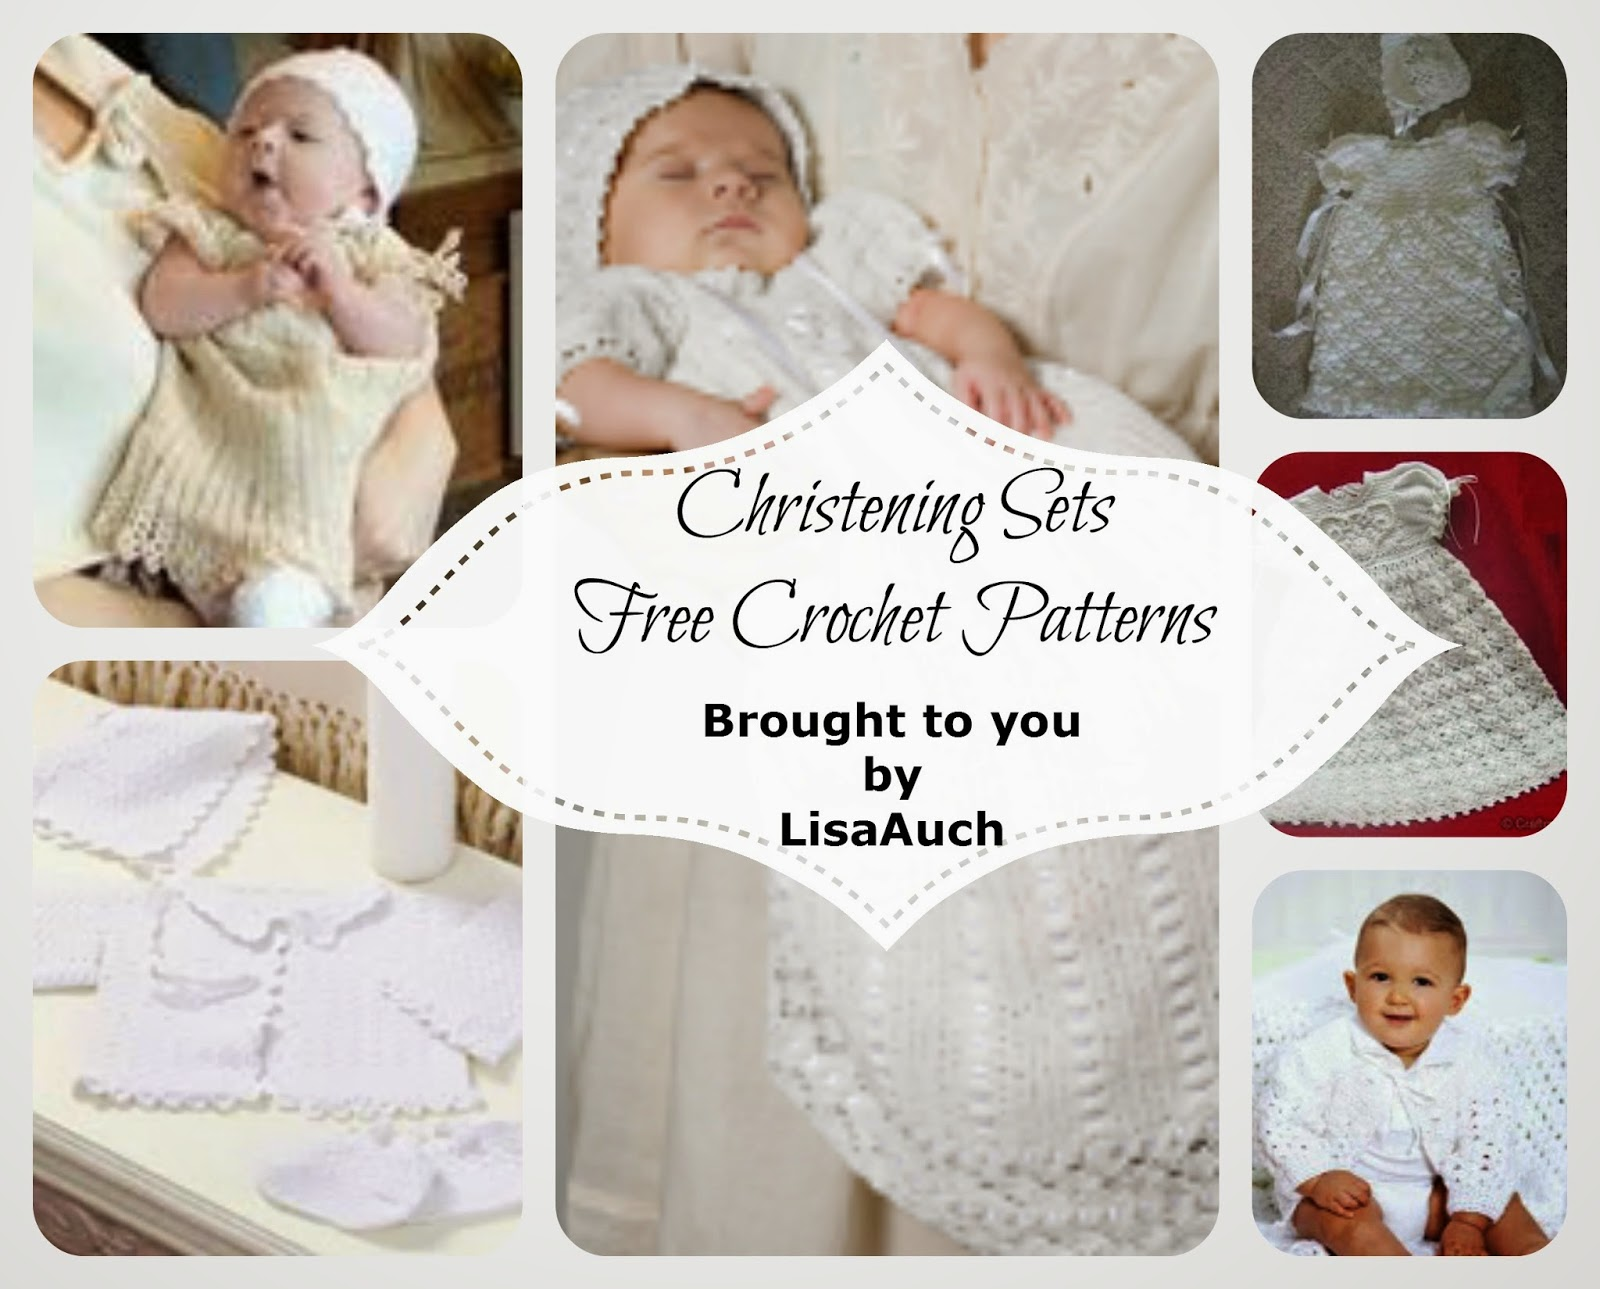 http://www.crochet-patterns-free.com/2013/12/free-crochet-christening-gown-patterns.html